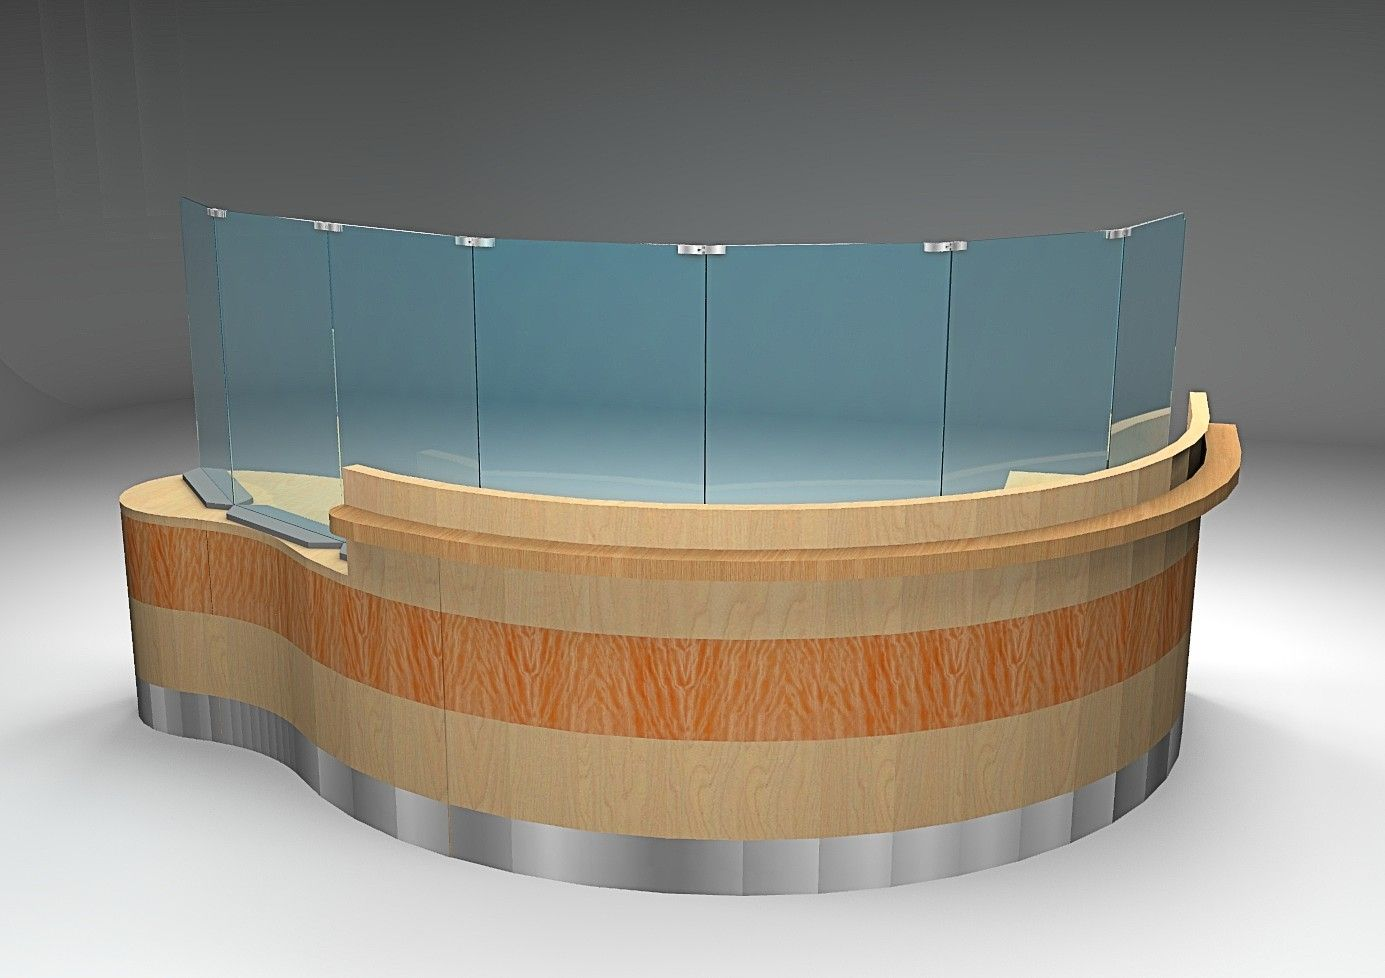 CUSTOM RECEPTION DESKS WITH SOCIAL DISTANCING VERTICAL PROTECTIVE SHIELDS. CONTEMPORARY, TRANSITIONAL, TRADITIONAL: